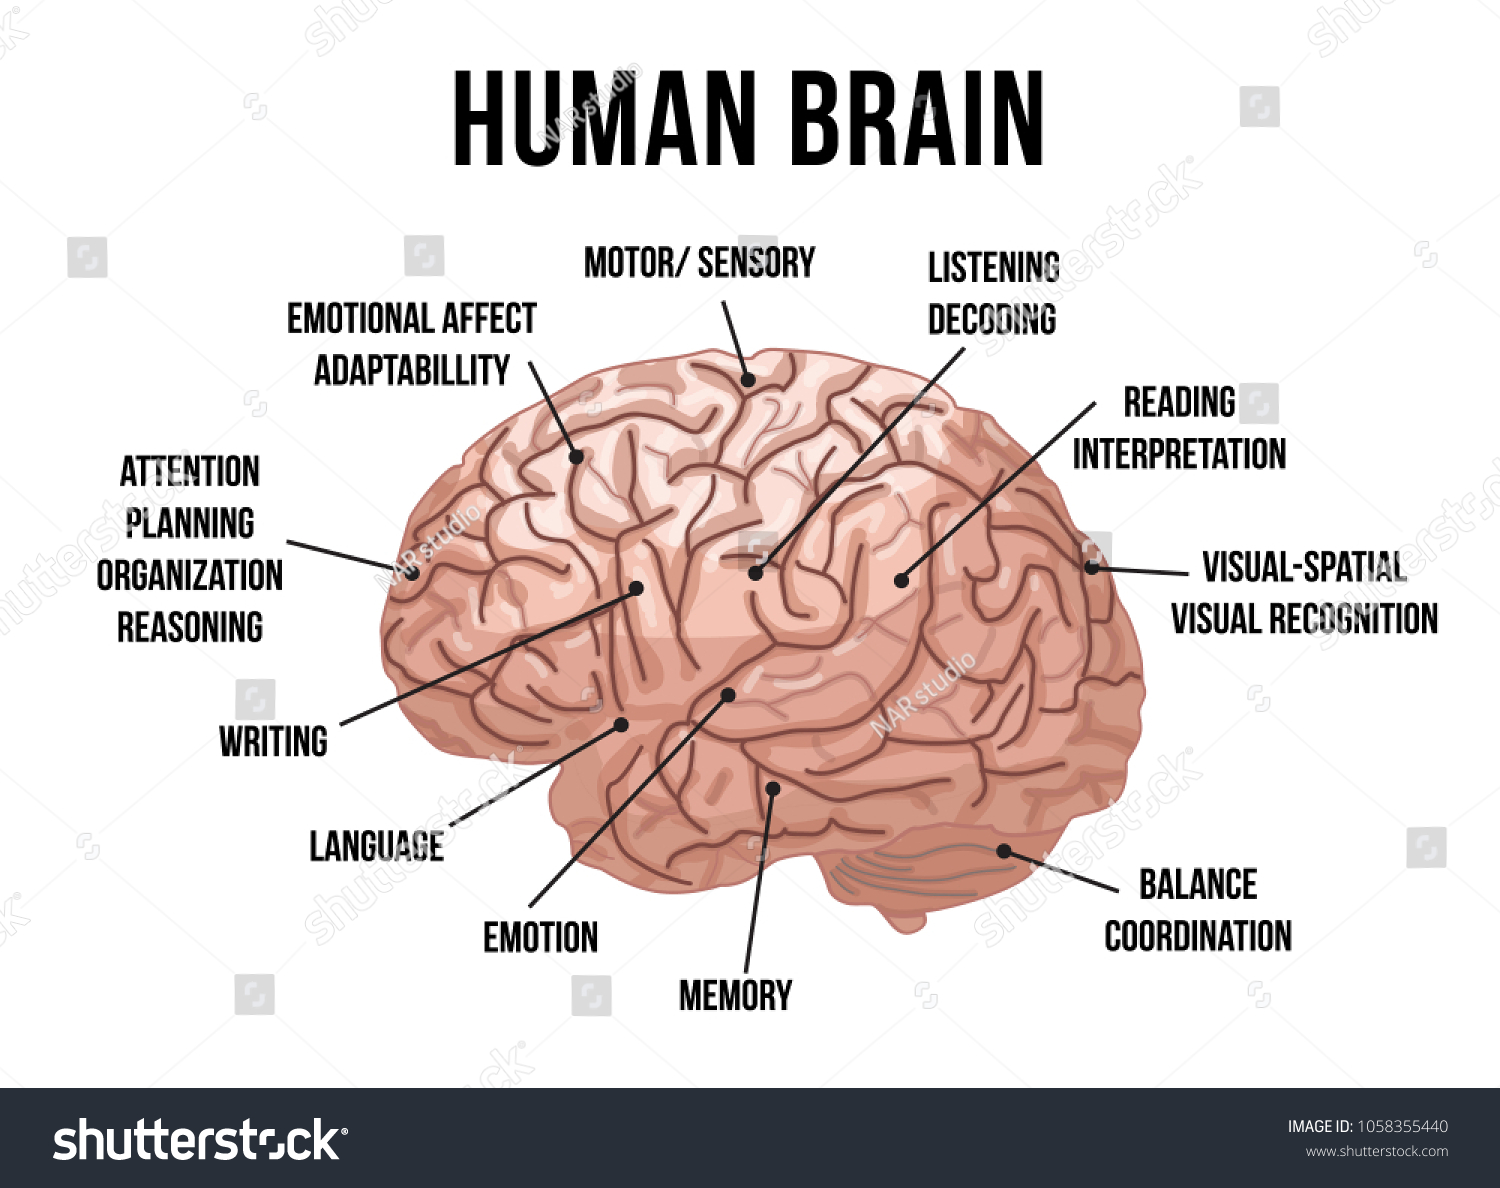 Human Brain Anatomy Vector Illustration Stock Vector Royalty Free